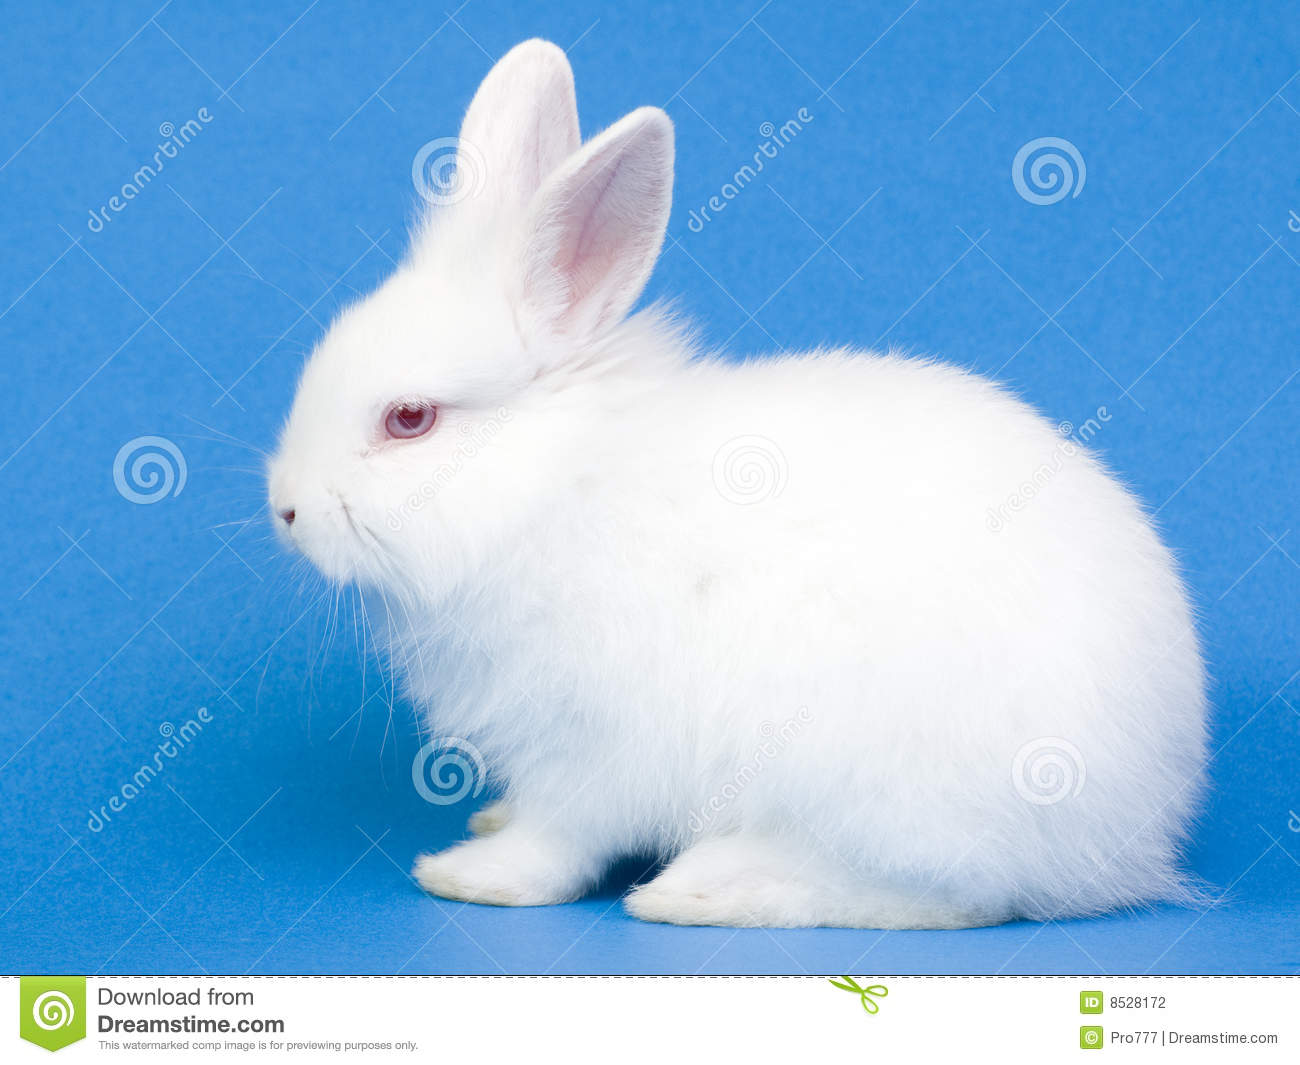 Cute White Bunny Pictures | www.pixshark.com - Images ...